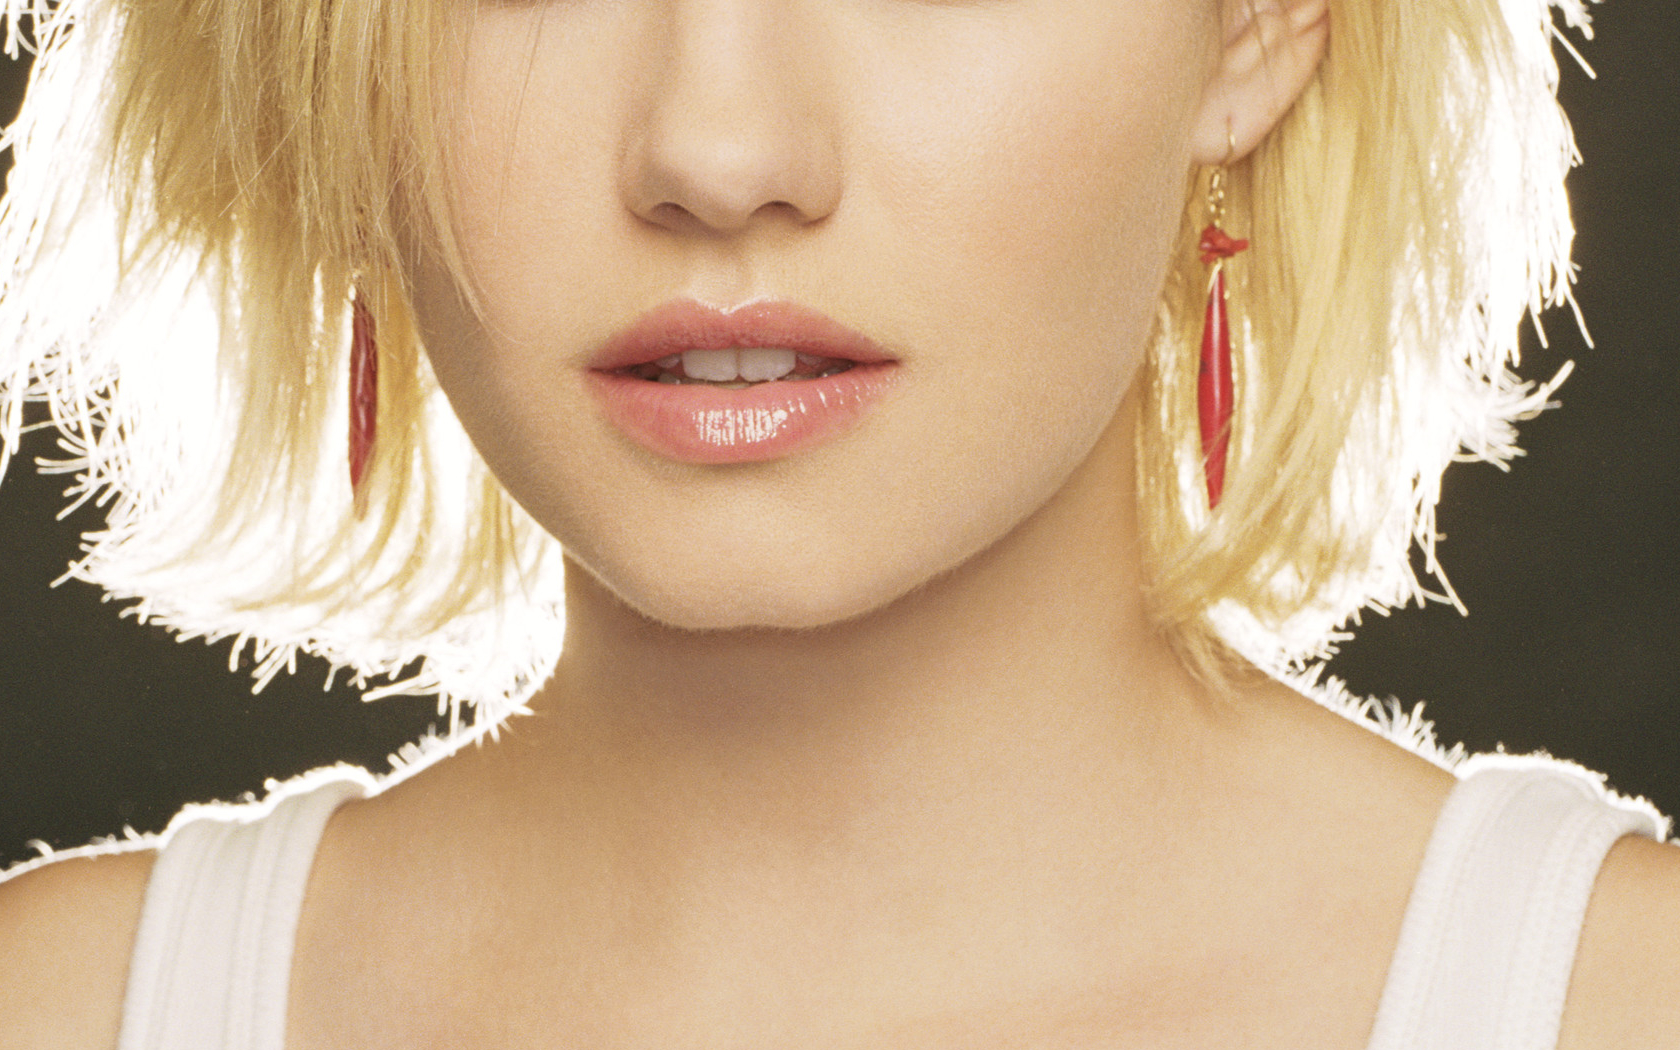 elisha cuthbert Celebrity HD Wallpaper